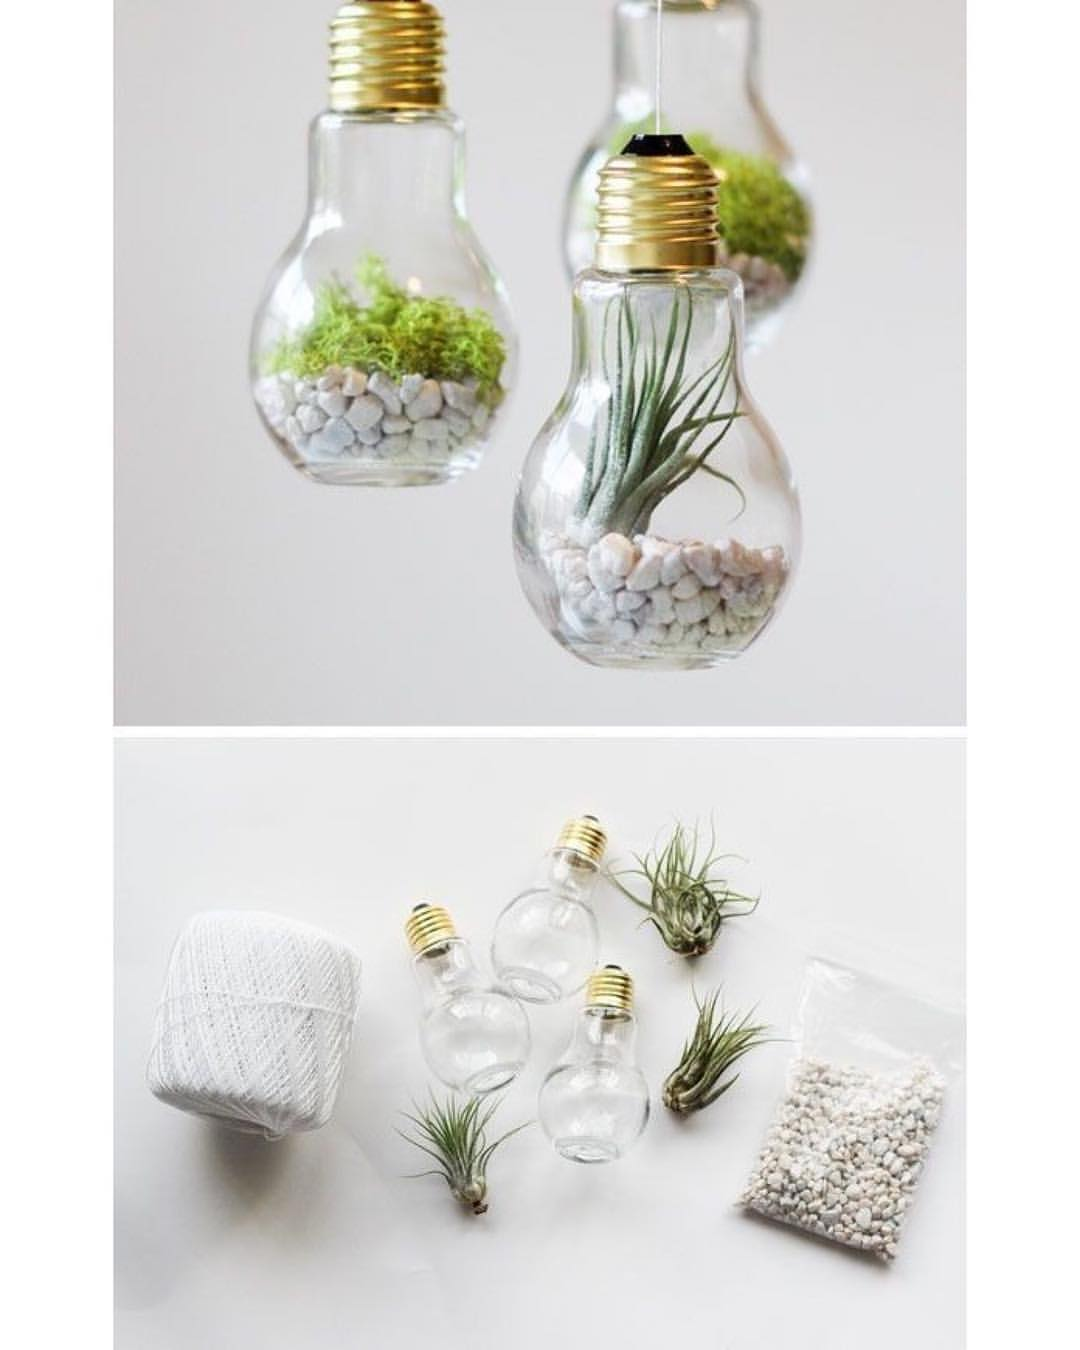 Hdi Home Design Ideas: 30 Wonderful DIY Decorating Ideas For Your Home